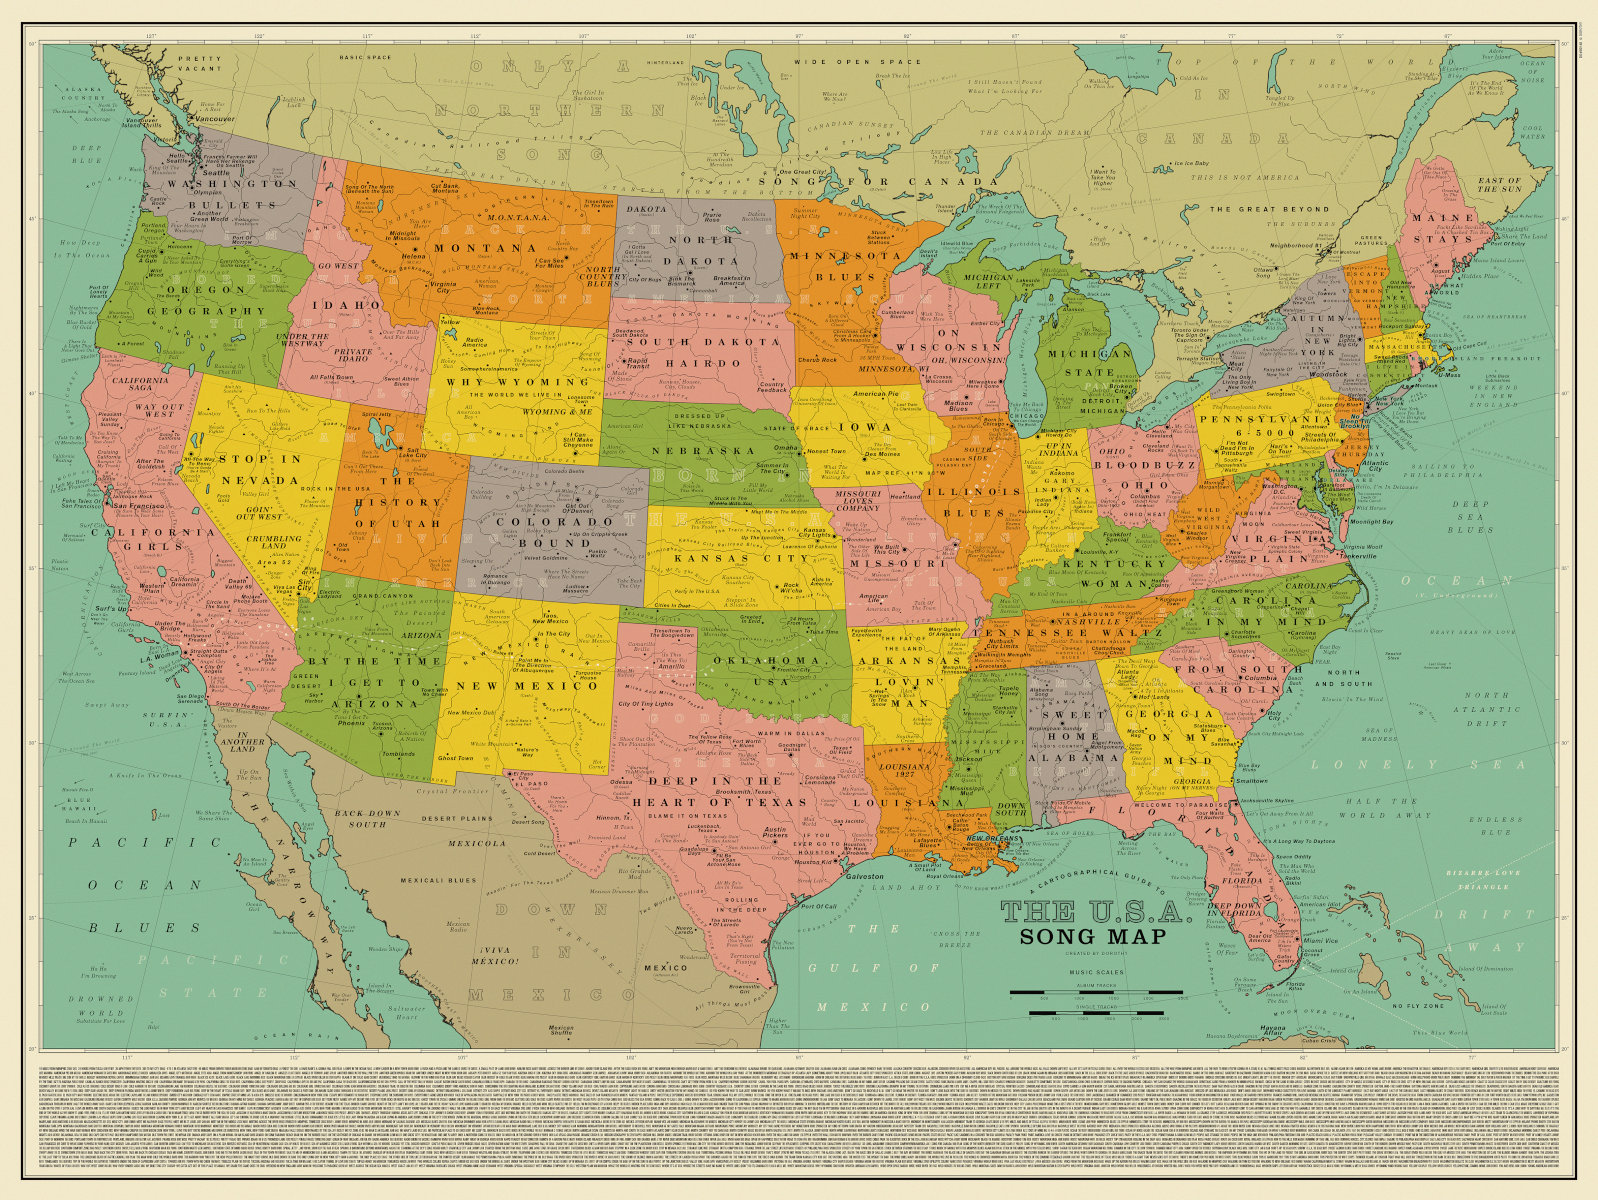 A new map of the US is made up entirely of song titles ...